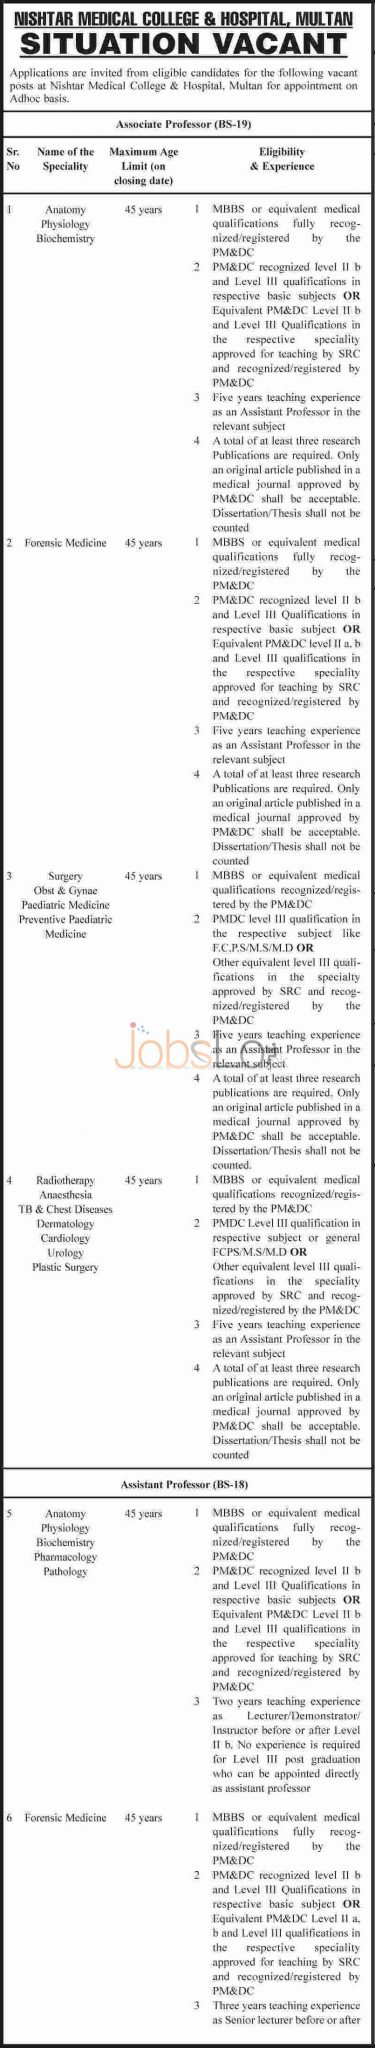 Nishtar Medical College and Hospital Multan Job Opportunities